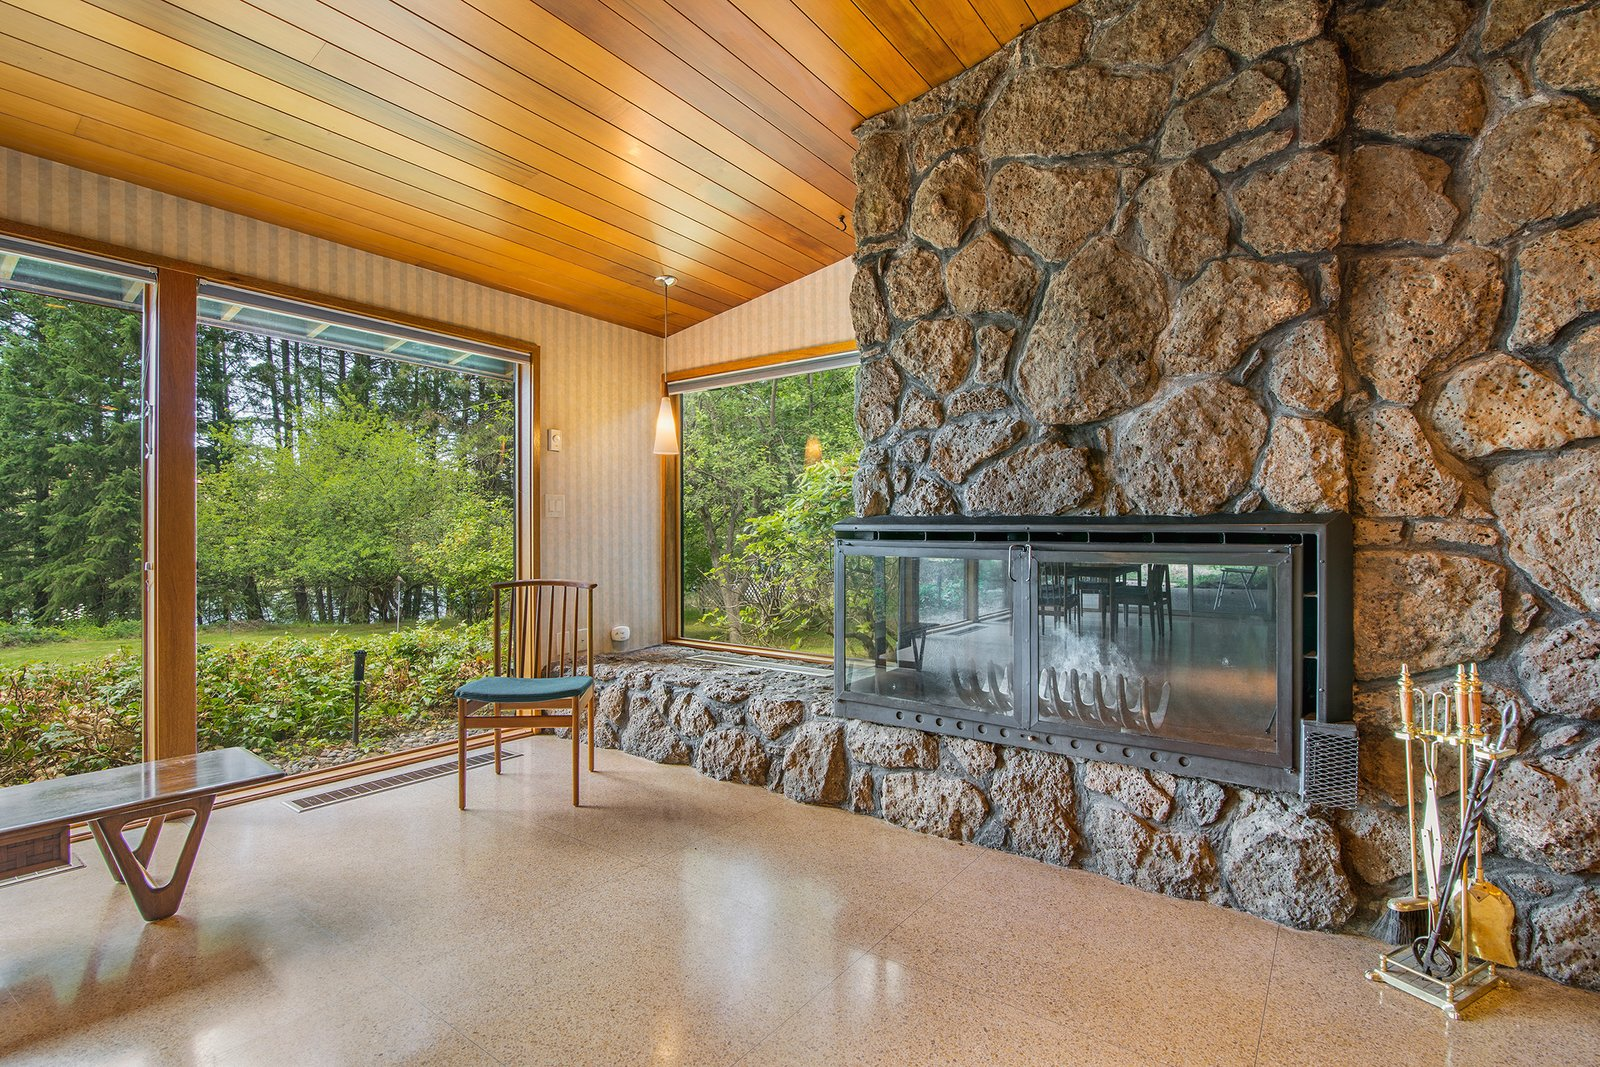 Living Room, Corner Fireplace, and Terrazzo Floor  Photo 11 of 11 in A Waterfront Washington Home Designed by a Renowned Spokane Architect Is Listed For $675K